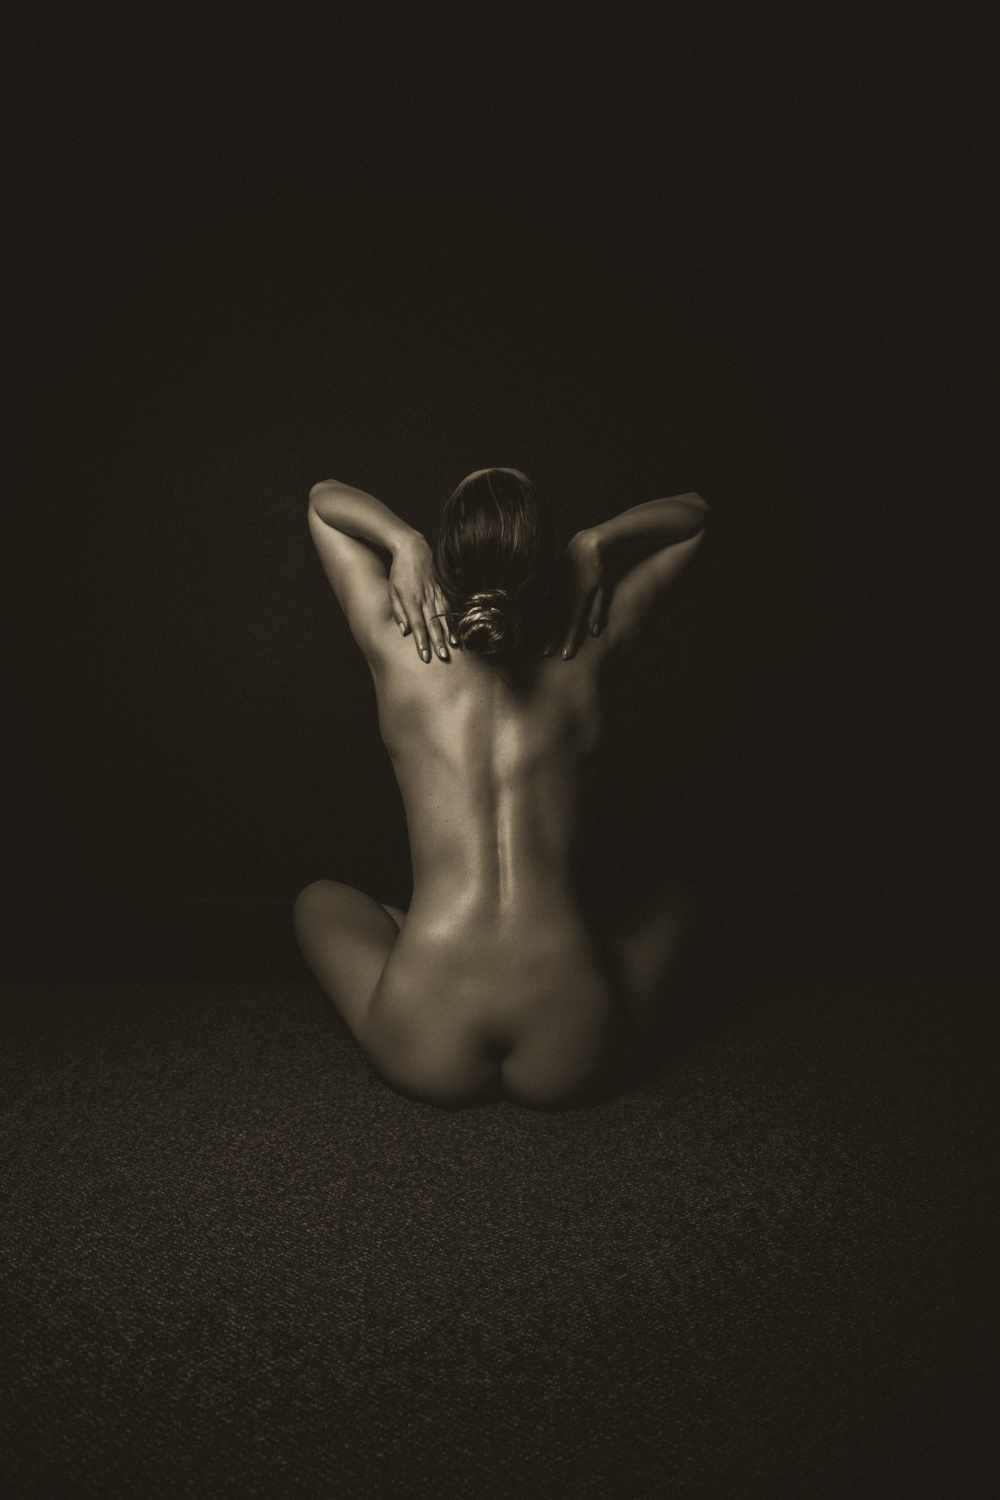 nude fine art photography